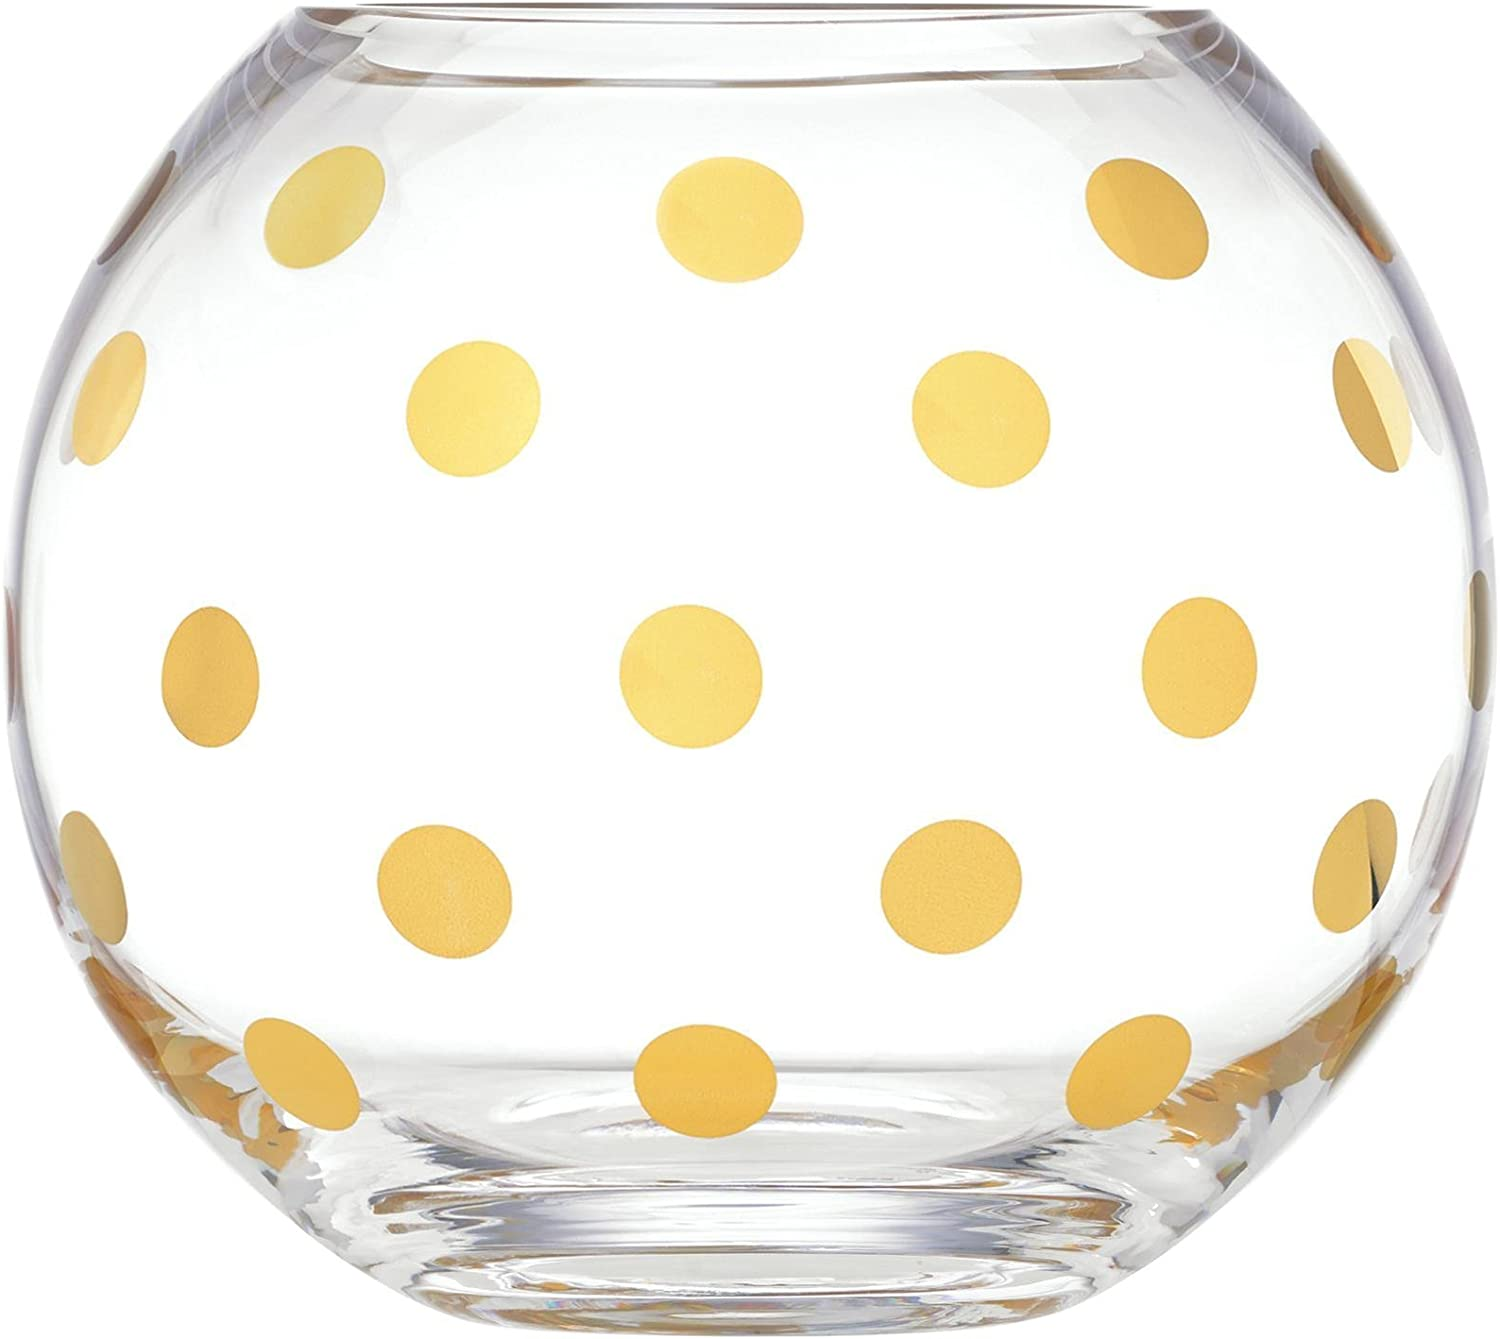 Kate Spade Pearl Place Rose Bowl, 3.75 LB, Clear